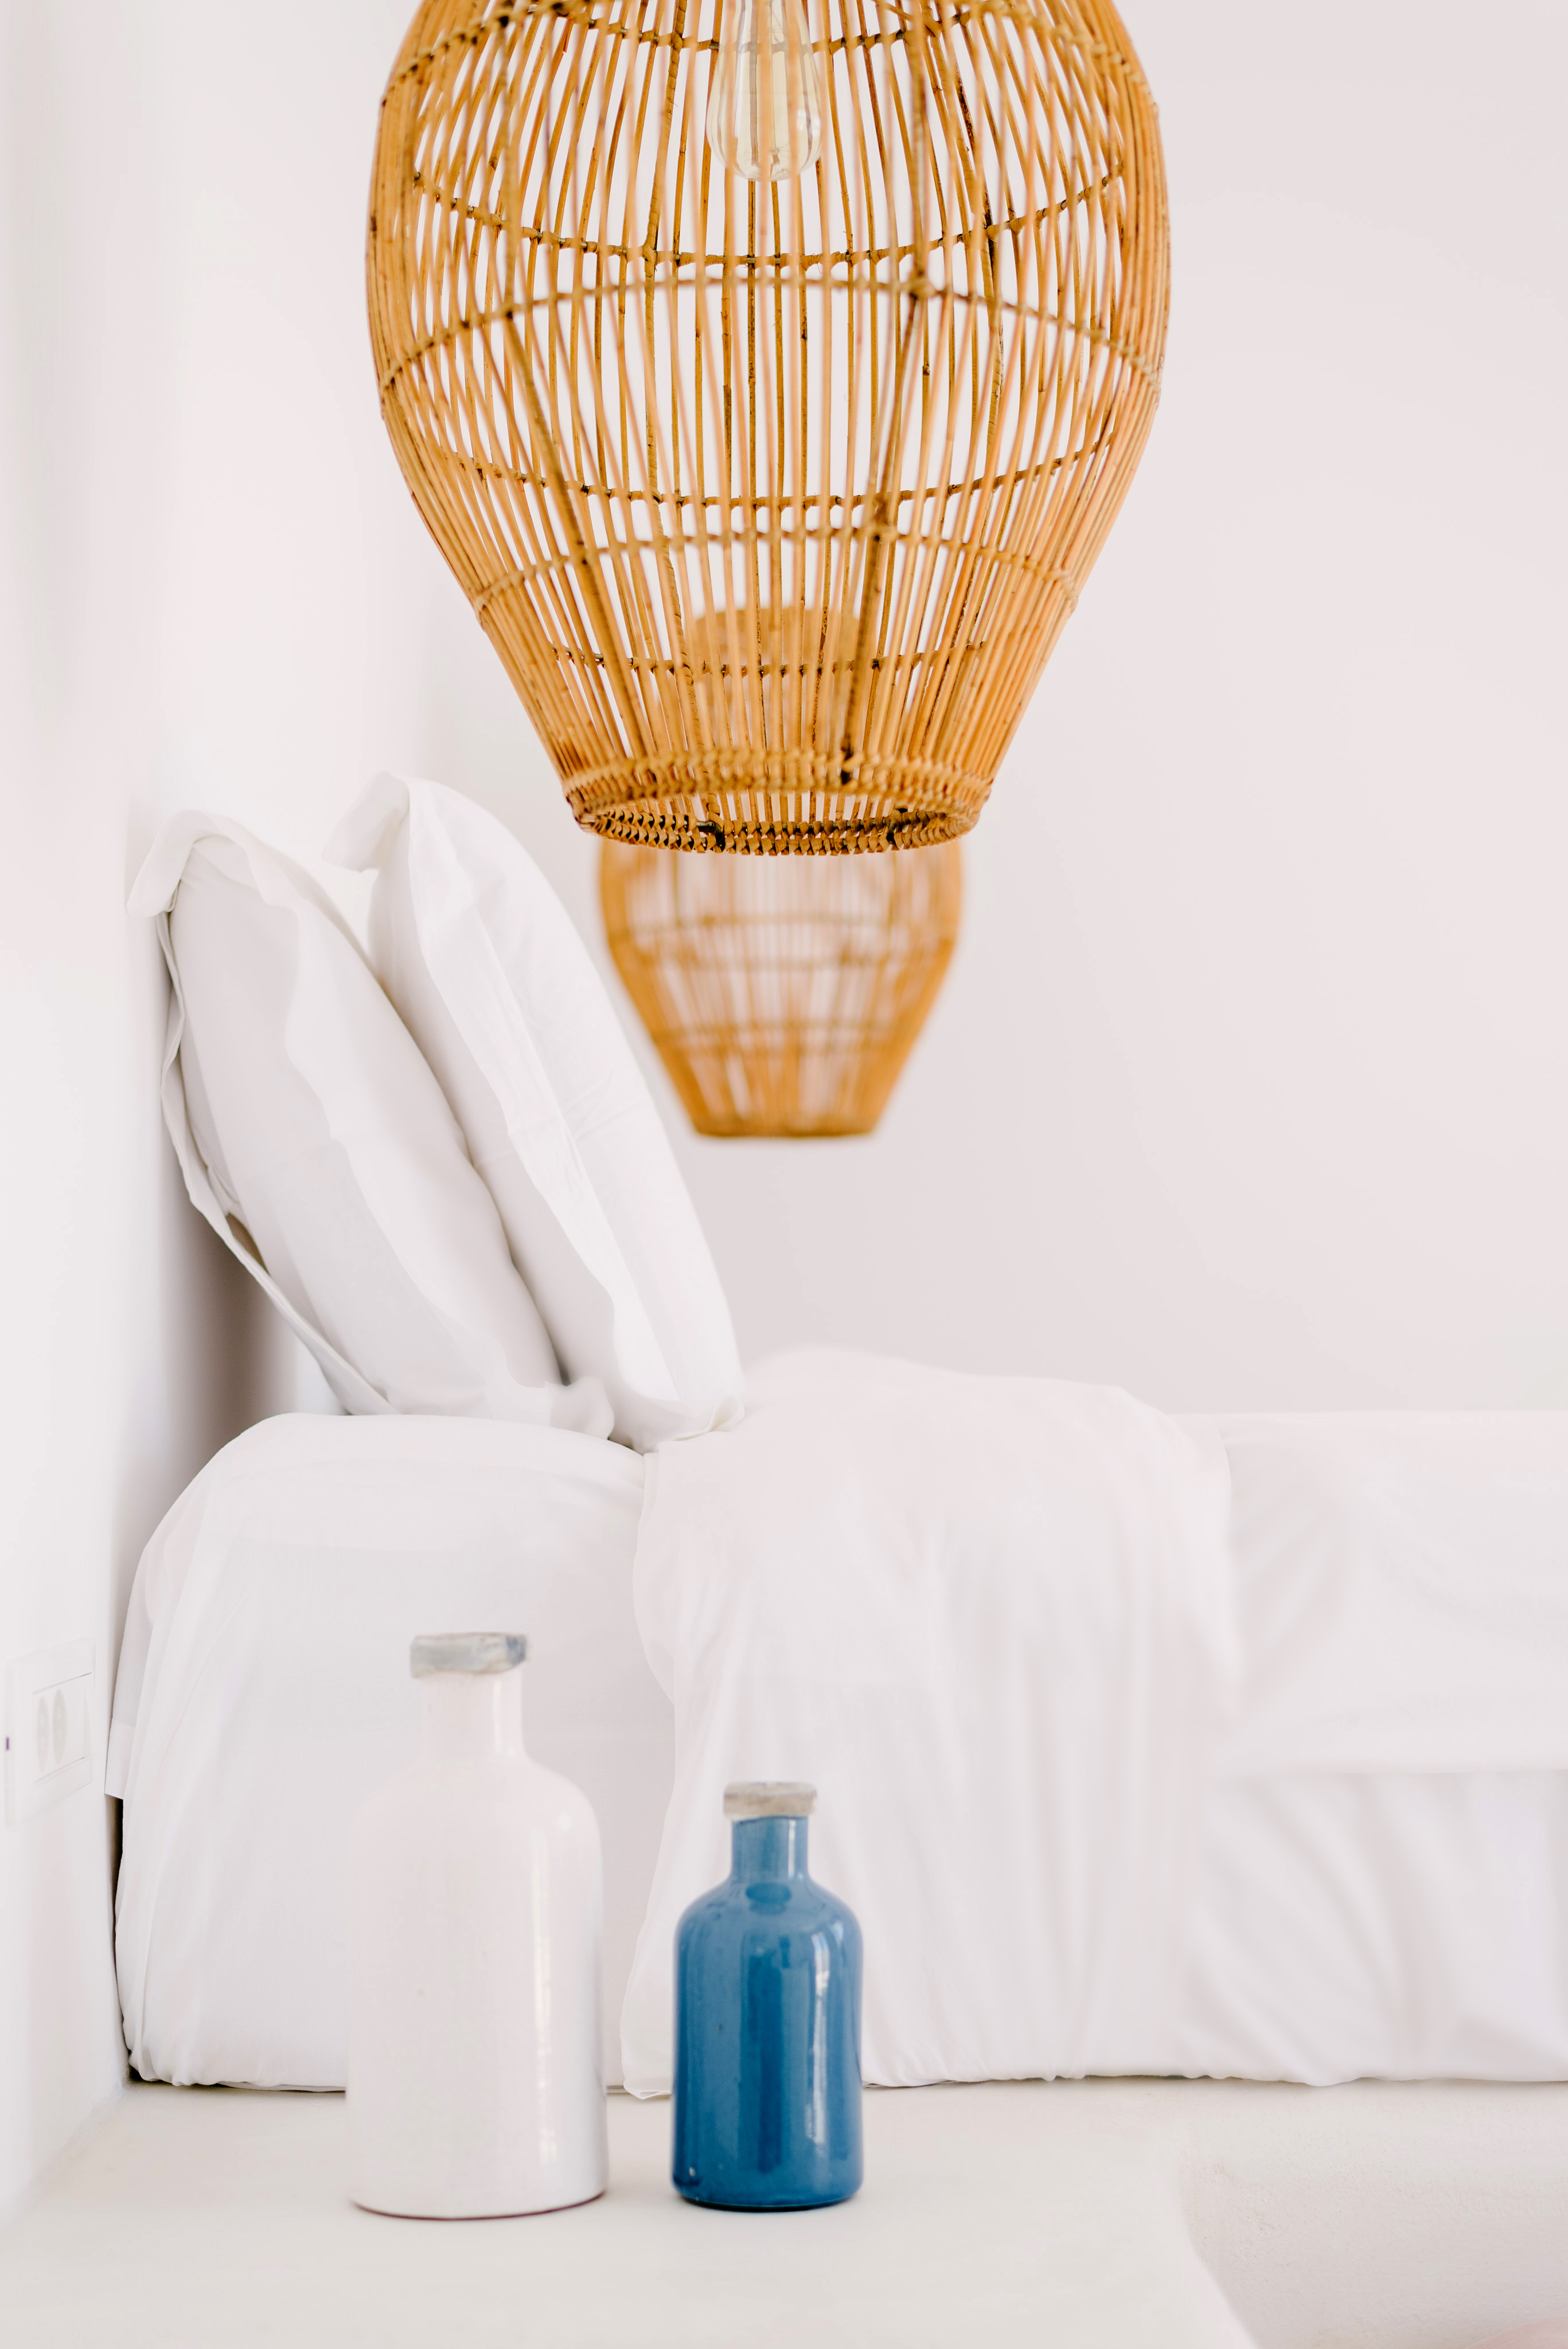 Generously sized light fixtures and small bottles work together well.